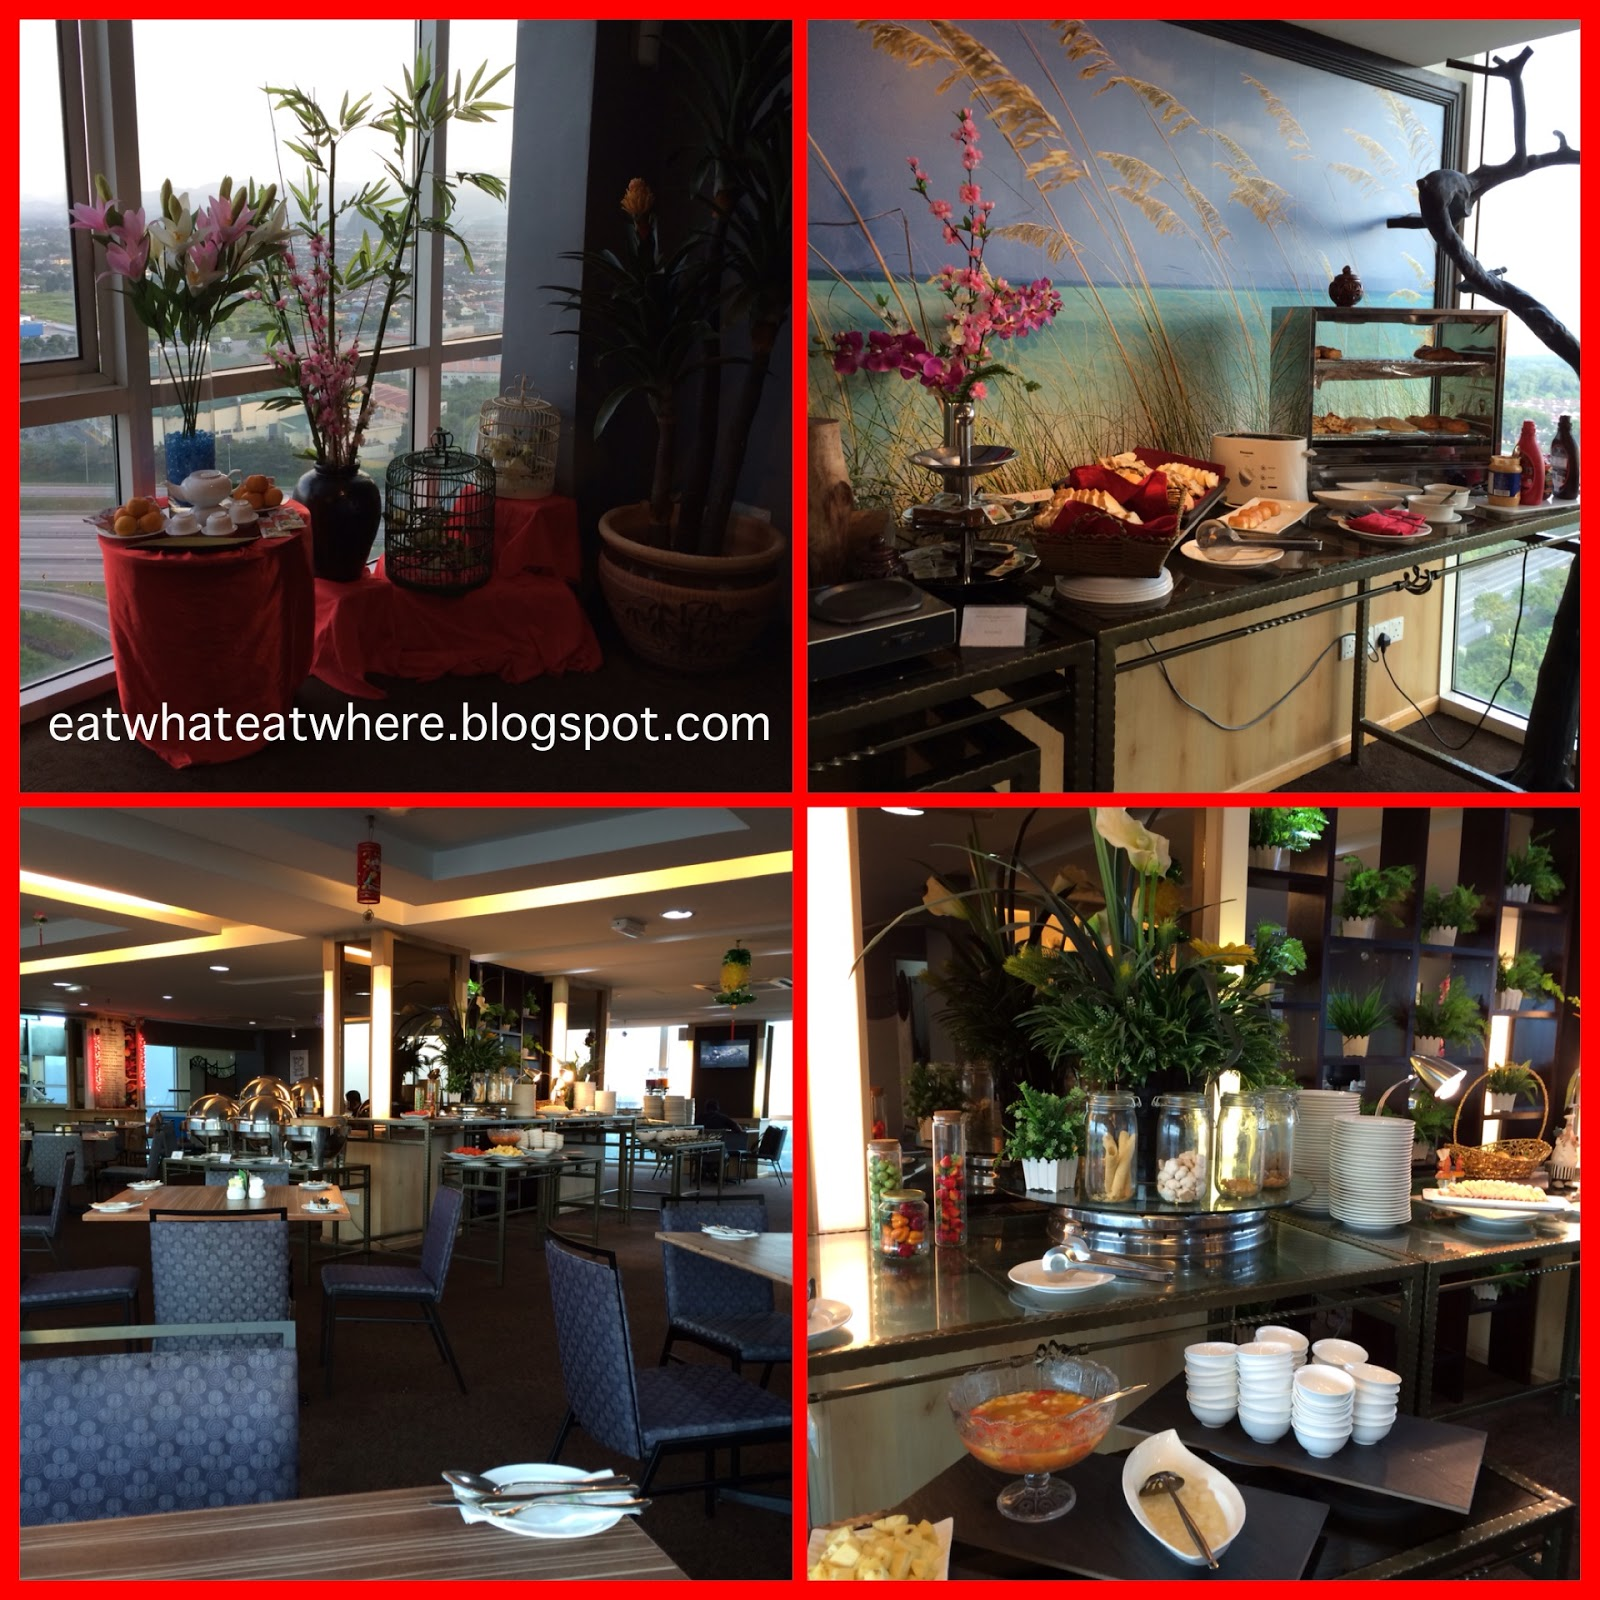 Eat what, Eat where?: Breakfast & Stay @ MH Hotel Ipoh